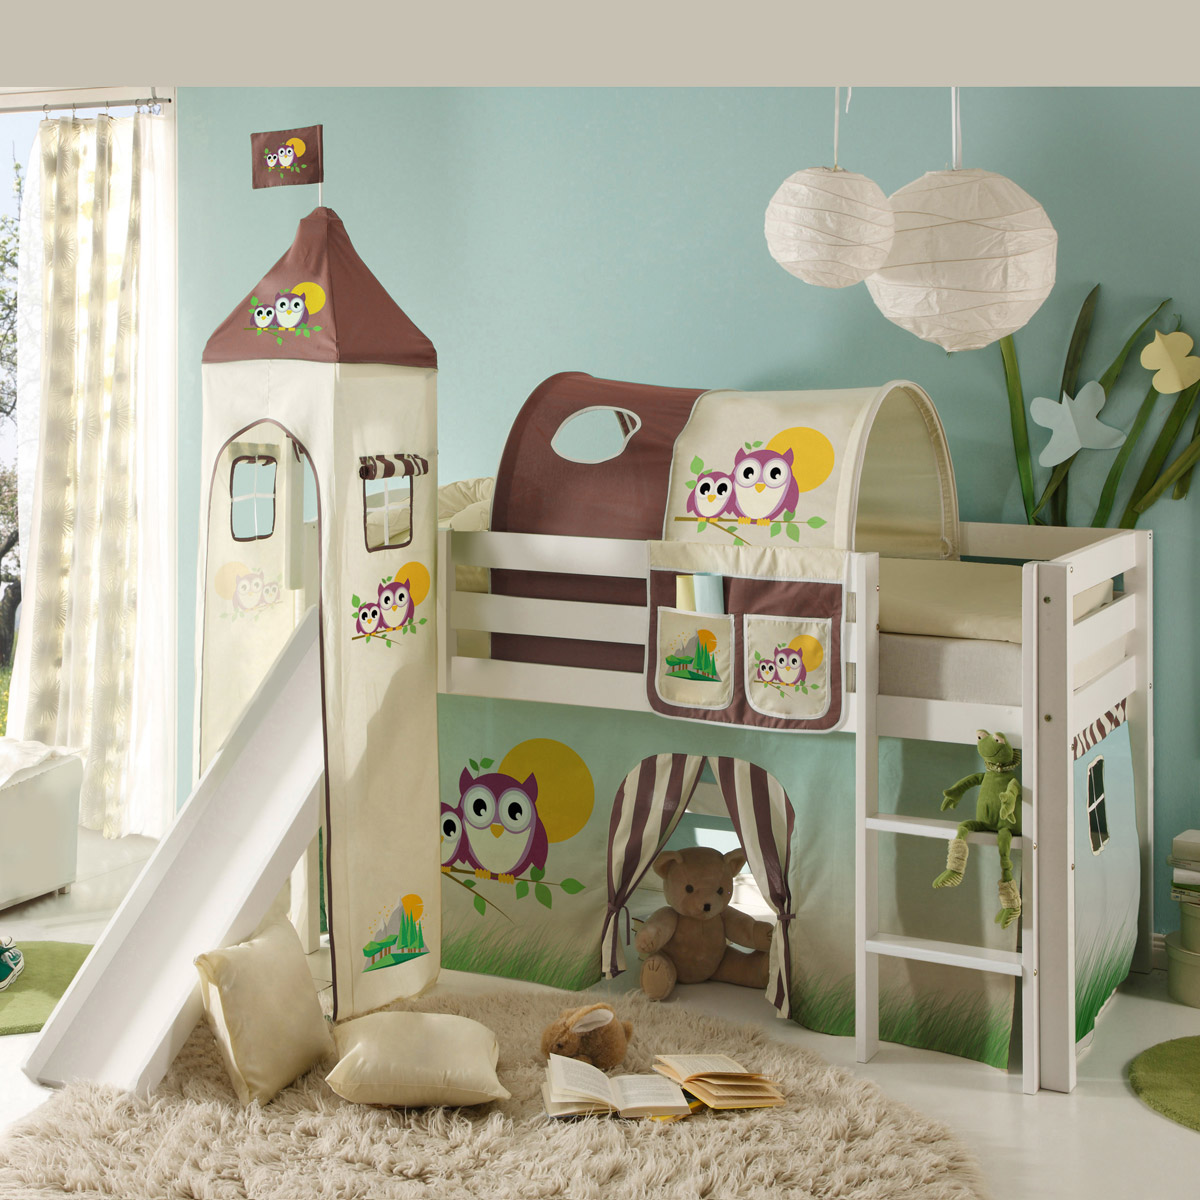 hochbett mit rutsche snoopy kinderzimmer bett 90x200 kiefer massiv wei leiter eur 129 95. Black Bedroom Furniture Sets. Home Design Ideas